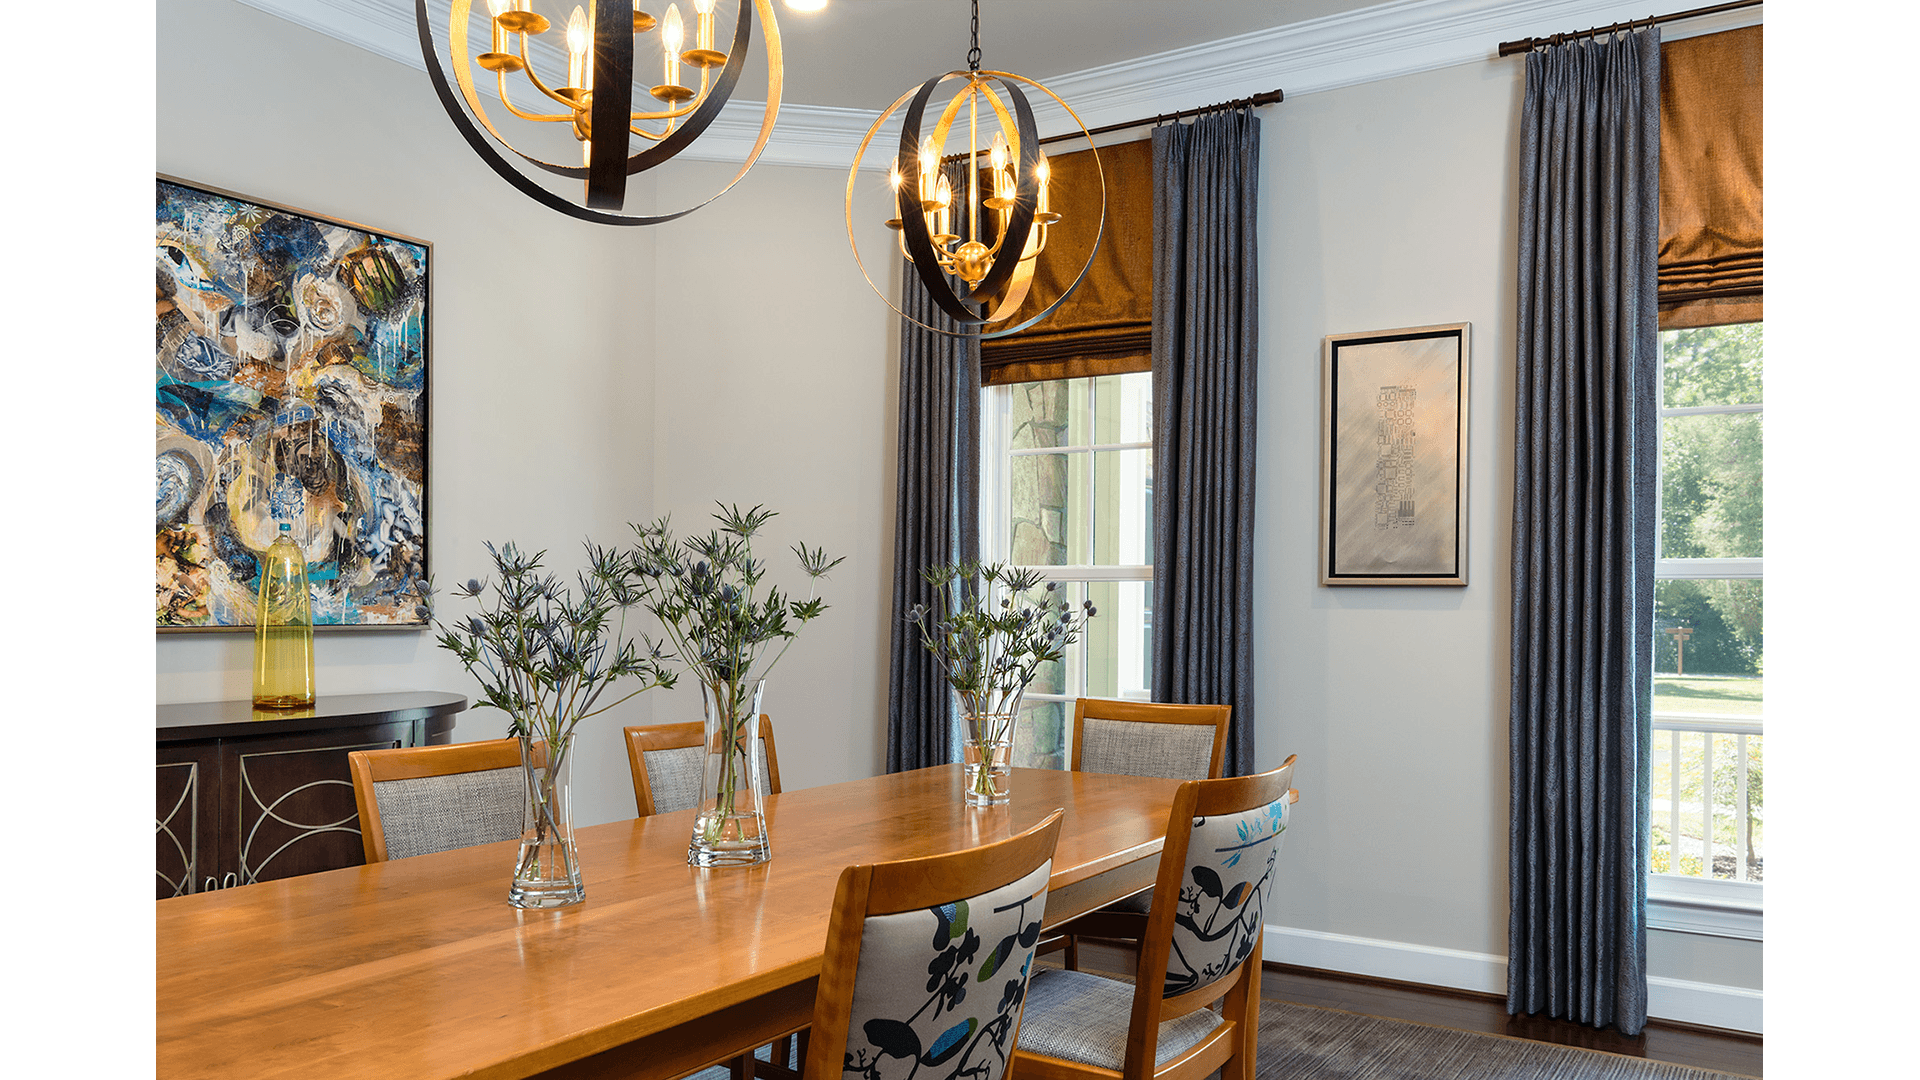 The Dining Room of a Gulick | One home on Innsbruck Avenue. © Hoachlander-Davis Photography. All Rights Reserved. Used with Permission.